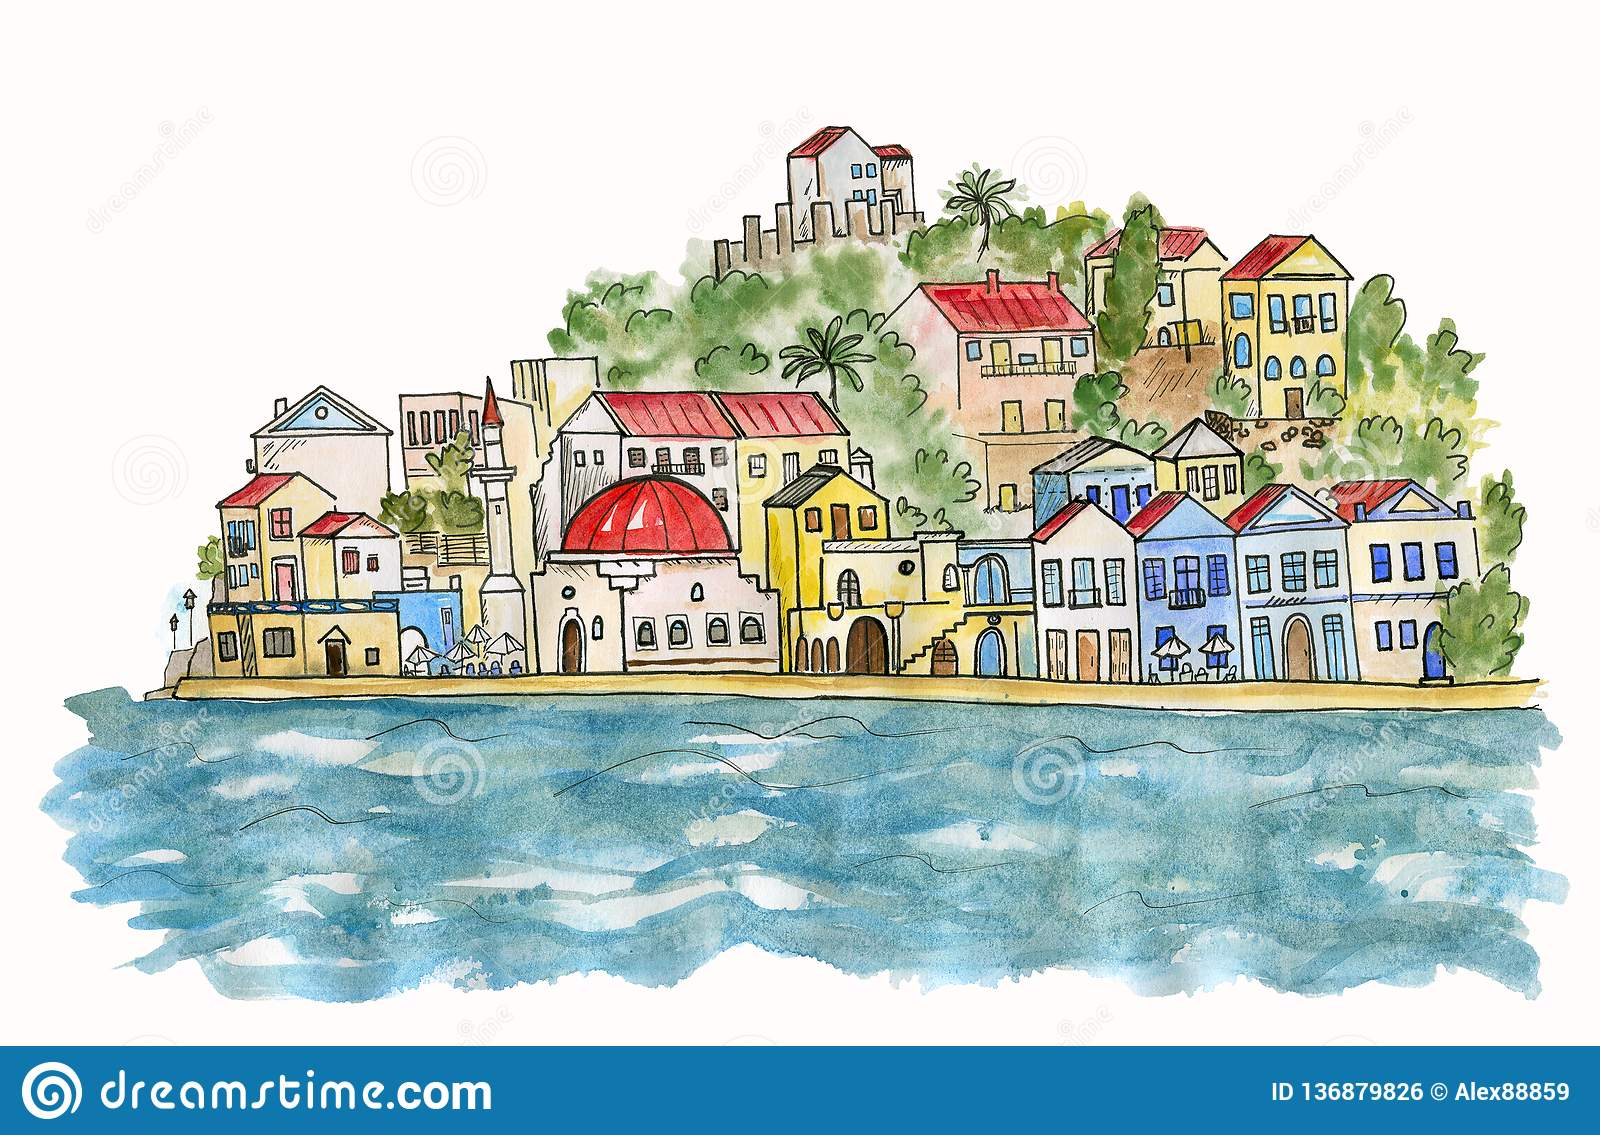 Southern city by the sea. Watercolor illustration.